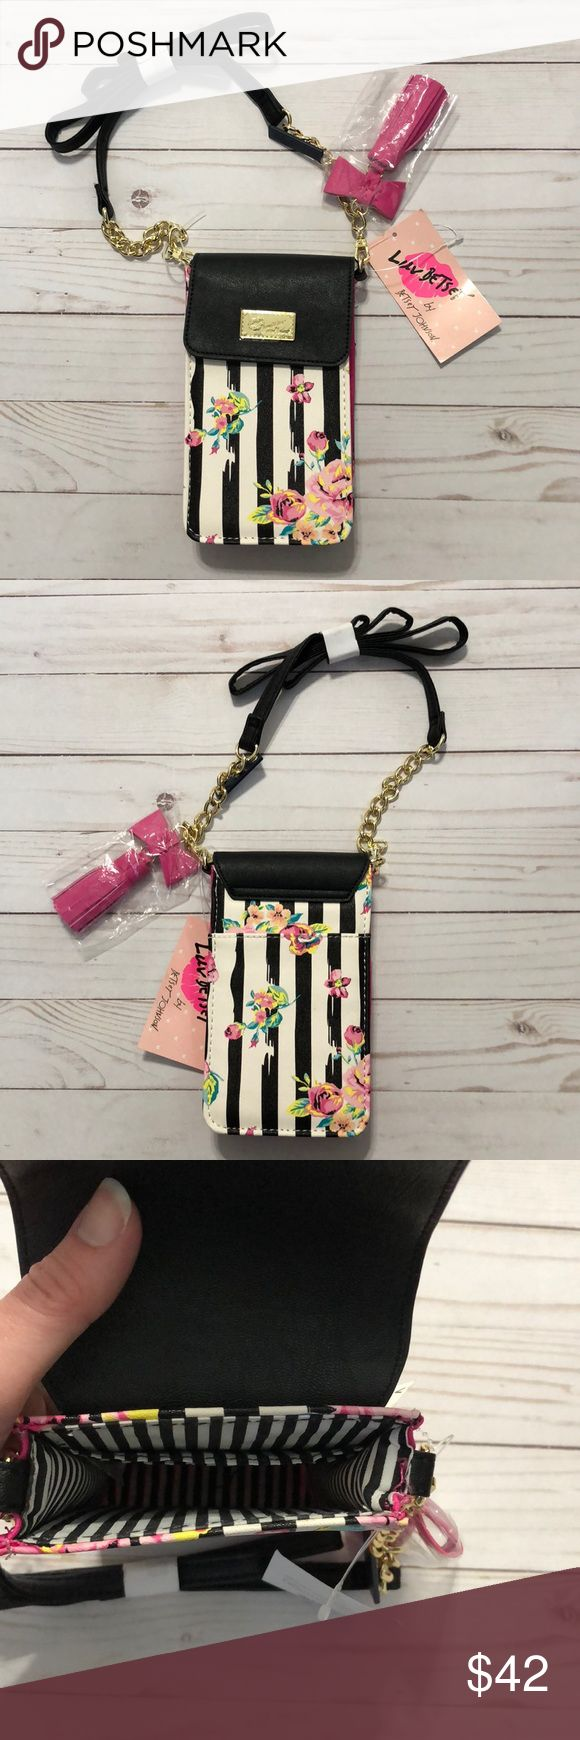 """Betsey Johnson Crossbody Cute Betsey Johnson """"wallet on strings"""" Cream with black stripes, multi colored flowers and hot pink sides! Long black removable strap with gold chain accents and a cute hot pink bow tassel! Back features a pocket while the interior is open with 3 credit card slots on the back! Approximate Measurements: 4"""" wide, 7"""" Tall, 1 1/2"""" deep. So cute! Make an offer!! Betsey Johnson Bags Crossbody Bags"""